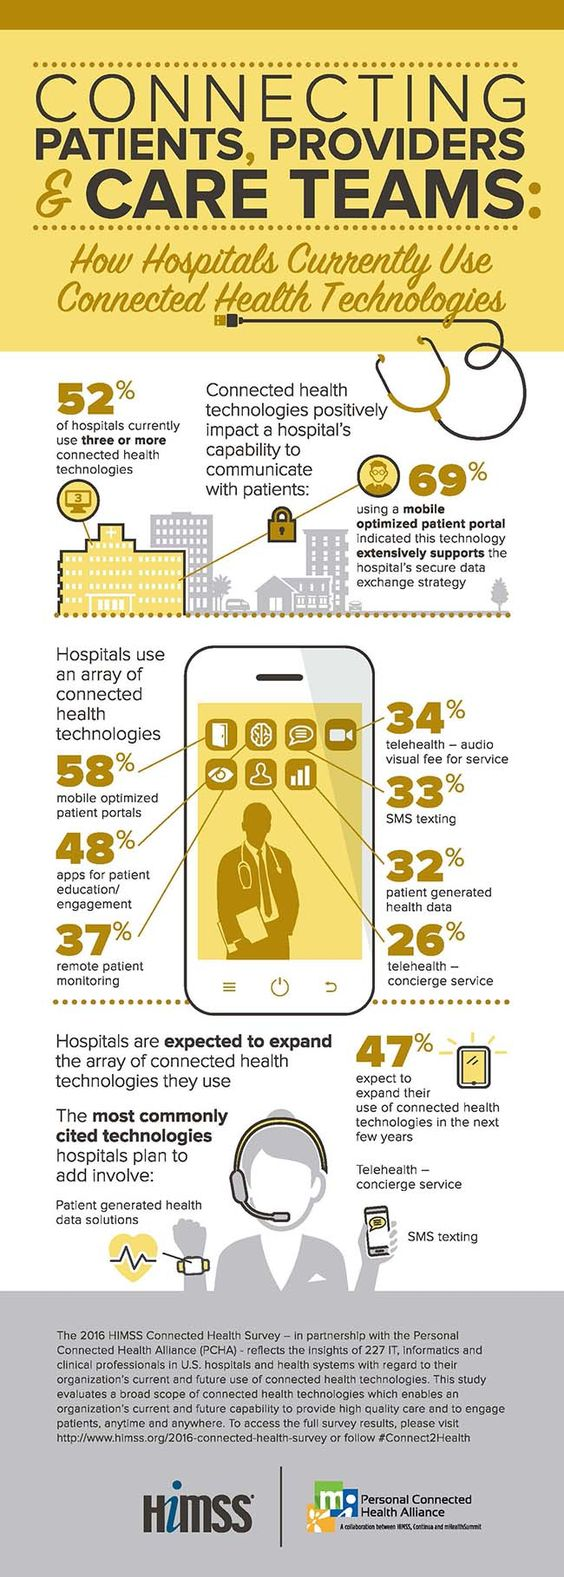 52% of hospitals currently use three or more connected health technologies, which positively impact a hospital's capability to communicate with patients.